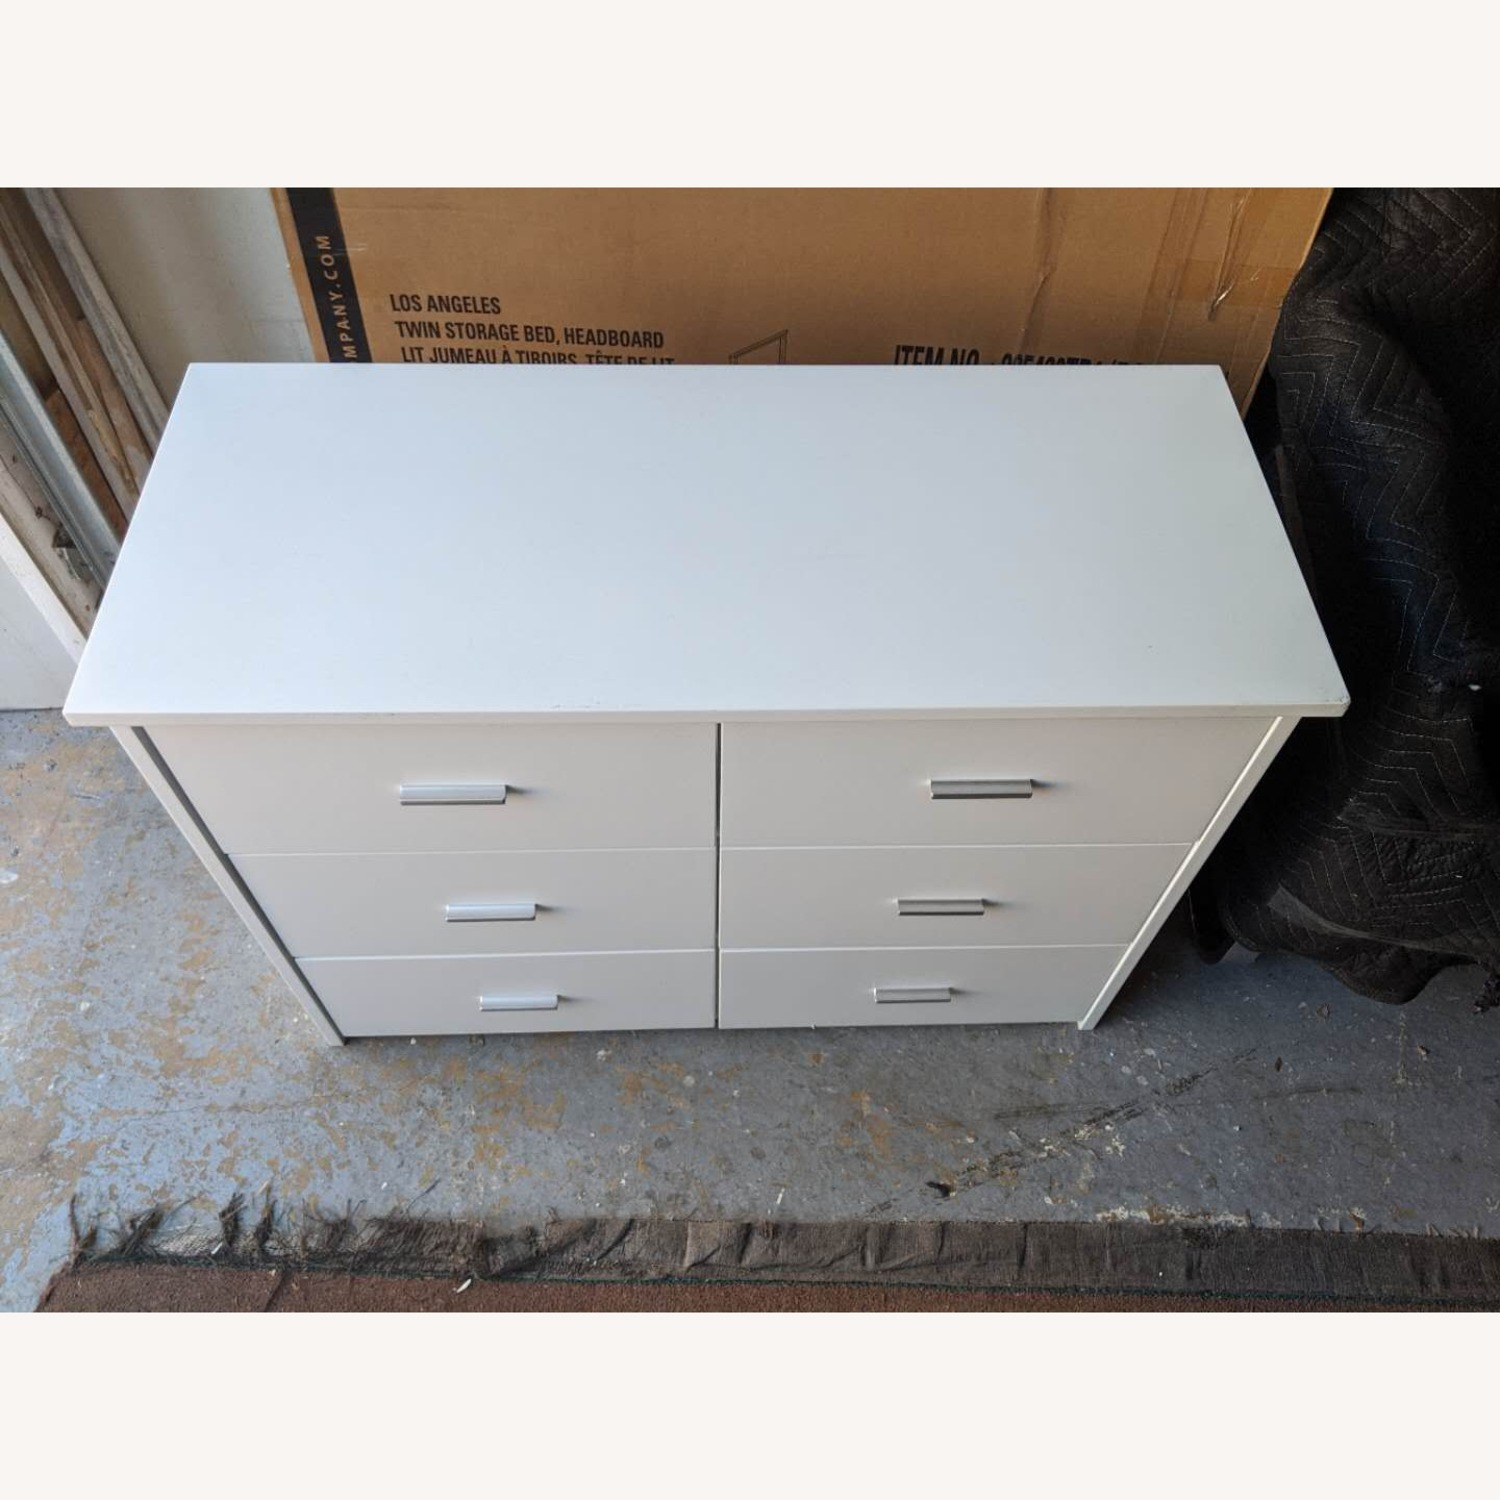 6-Drawer Storage Unit in White Finish - image-3